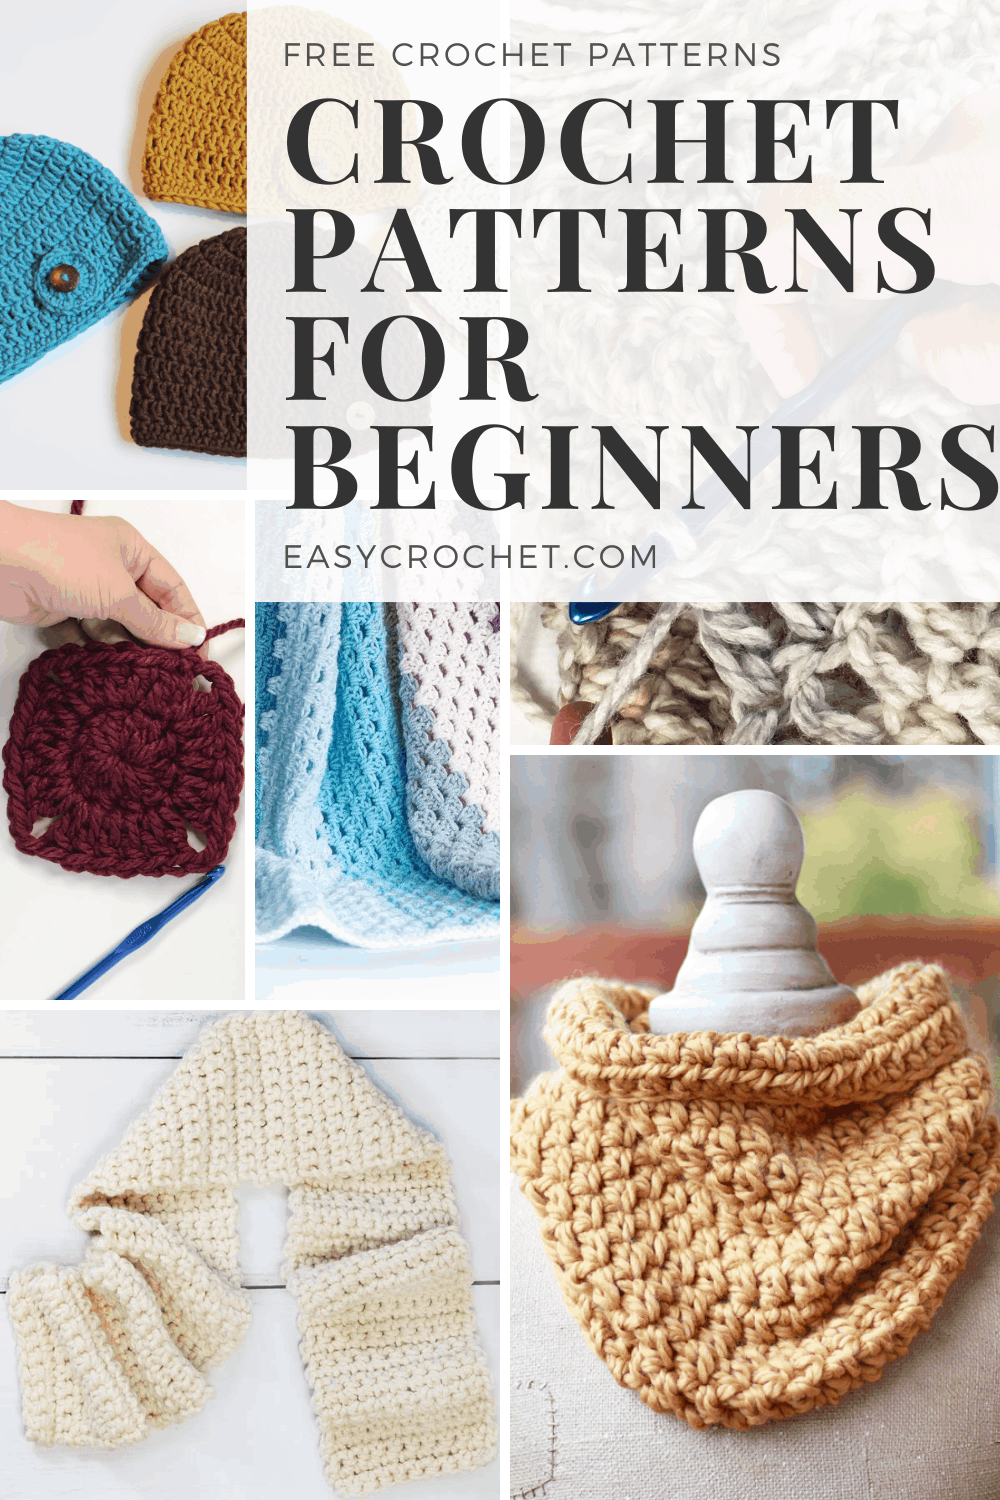 12 simple Crochet Patterns that are perfect for beginners! Once you have your crochet and hook explore these free crochet patterns to start making a project today! via @easycrochetcom